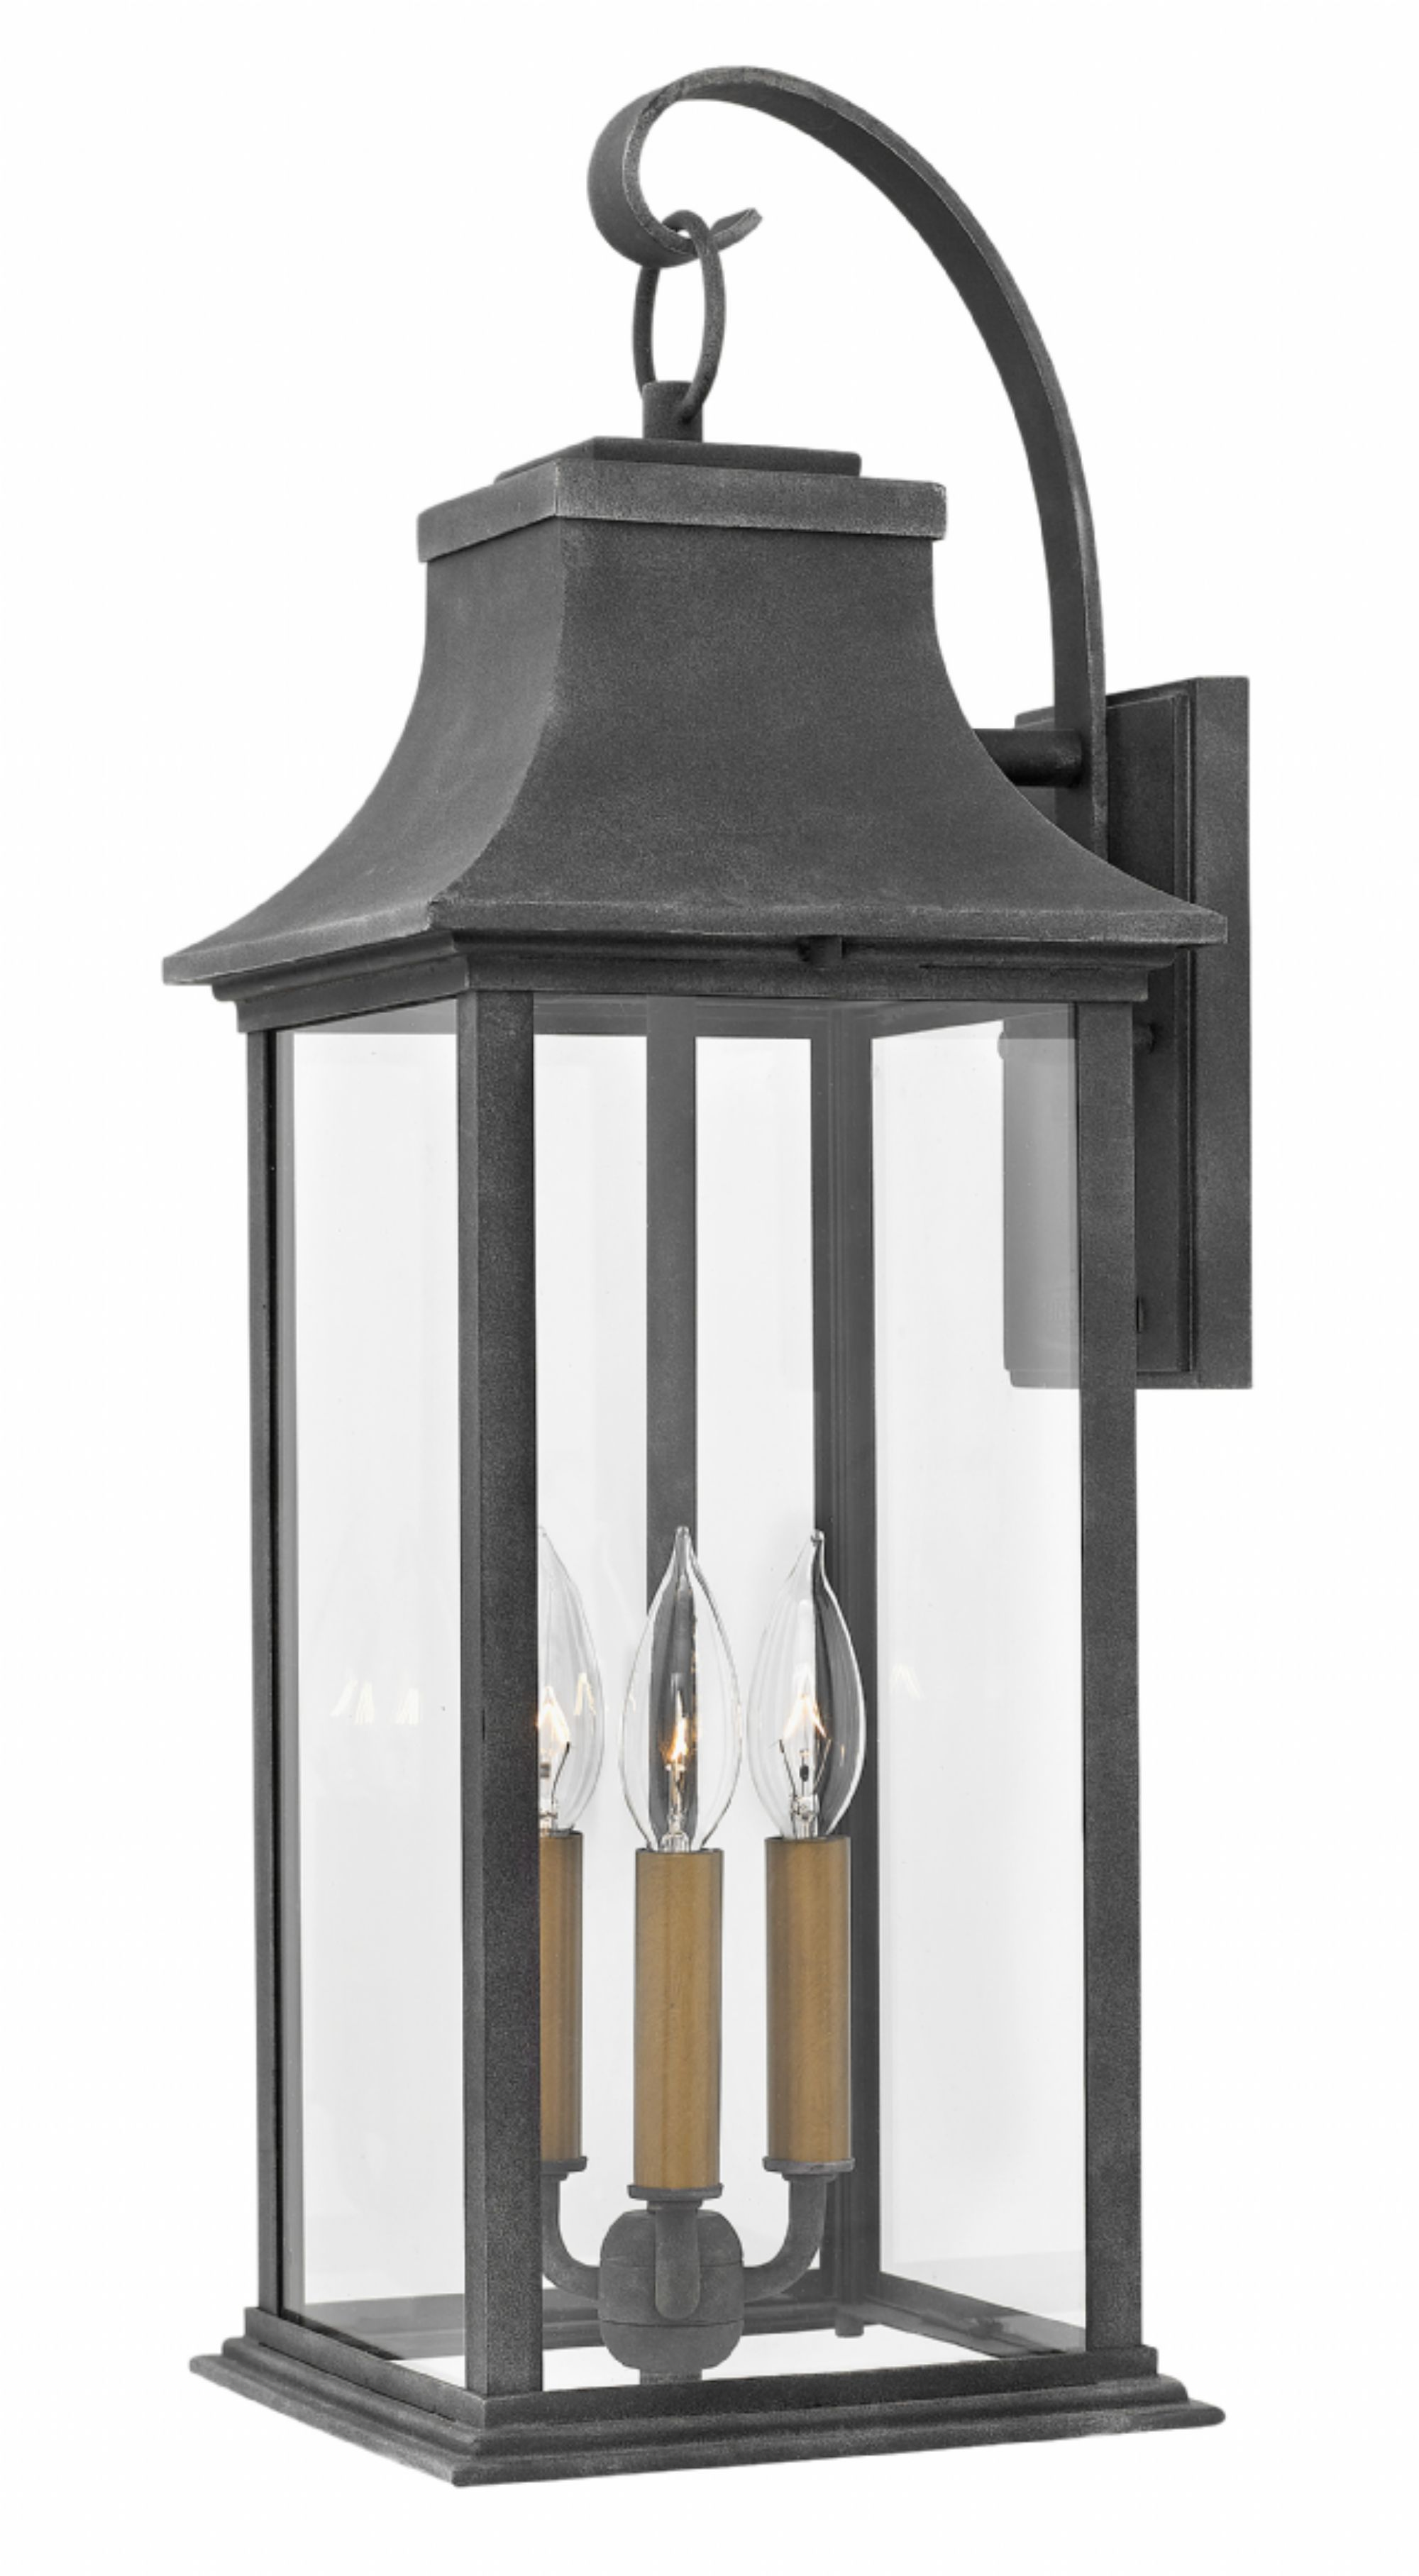 Hinkley lighting adair 2935dz light fixtures pinterest hinkley lighting carries many aged zinc adair exterior wall mount light fixtures that can be used to enhance the appearance and lighting of any home arubaitofo Gallery